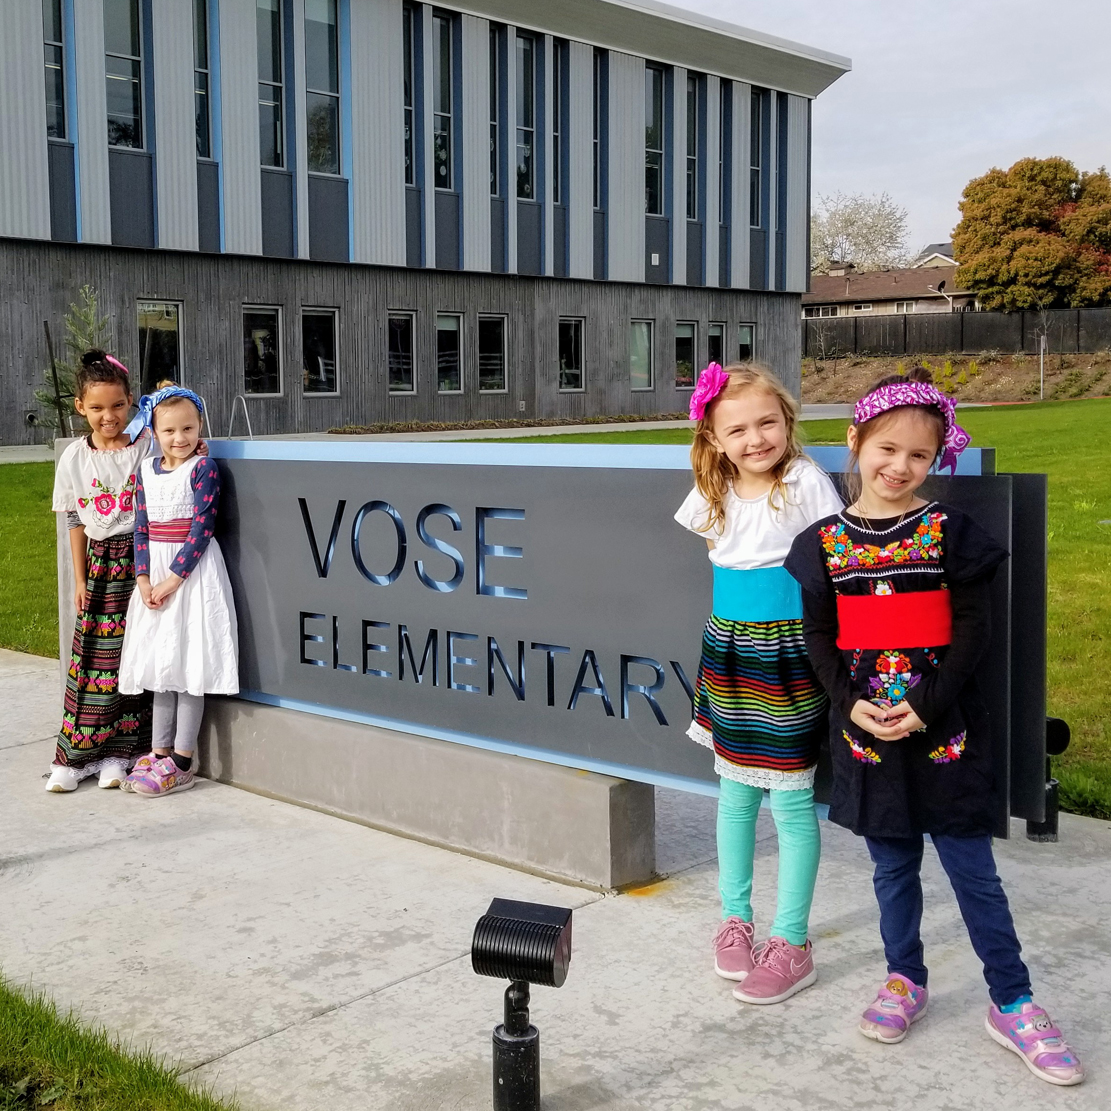 students outside of vose elementary school standing near the school sign